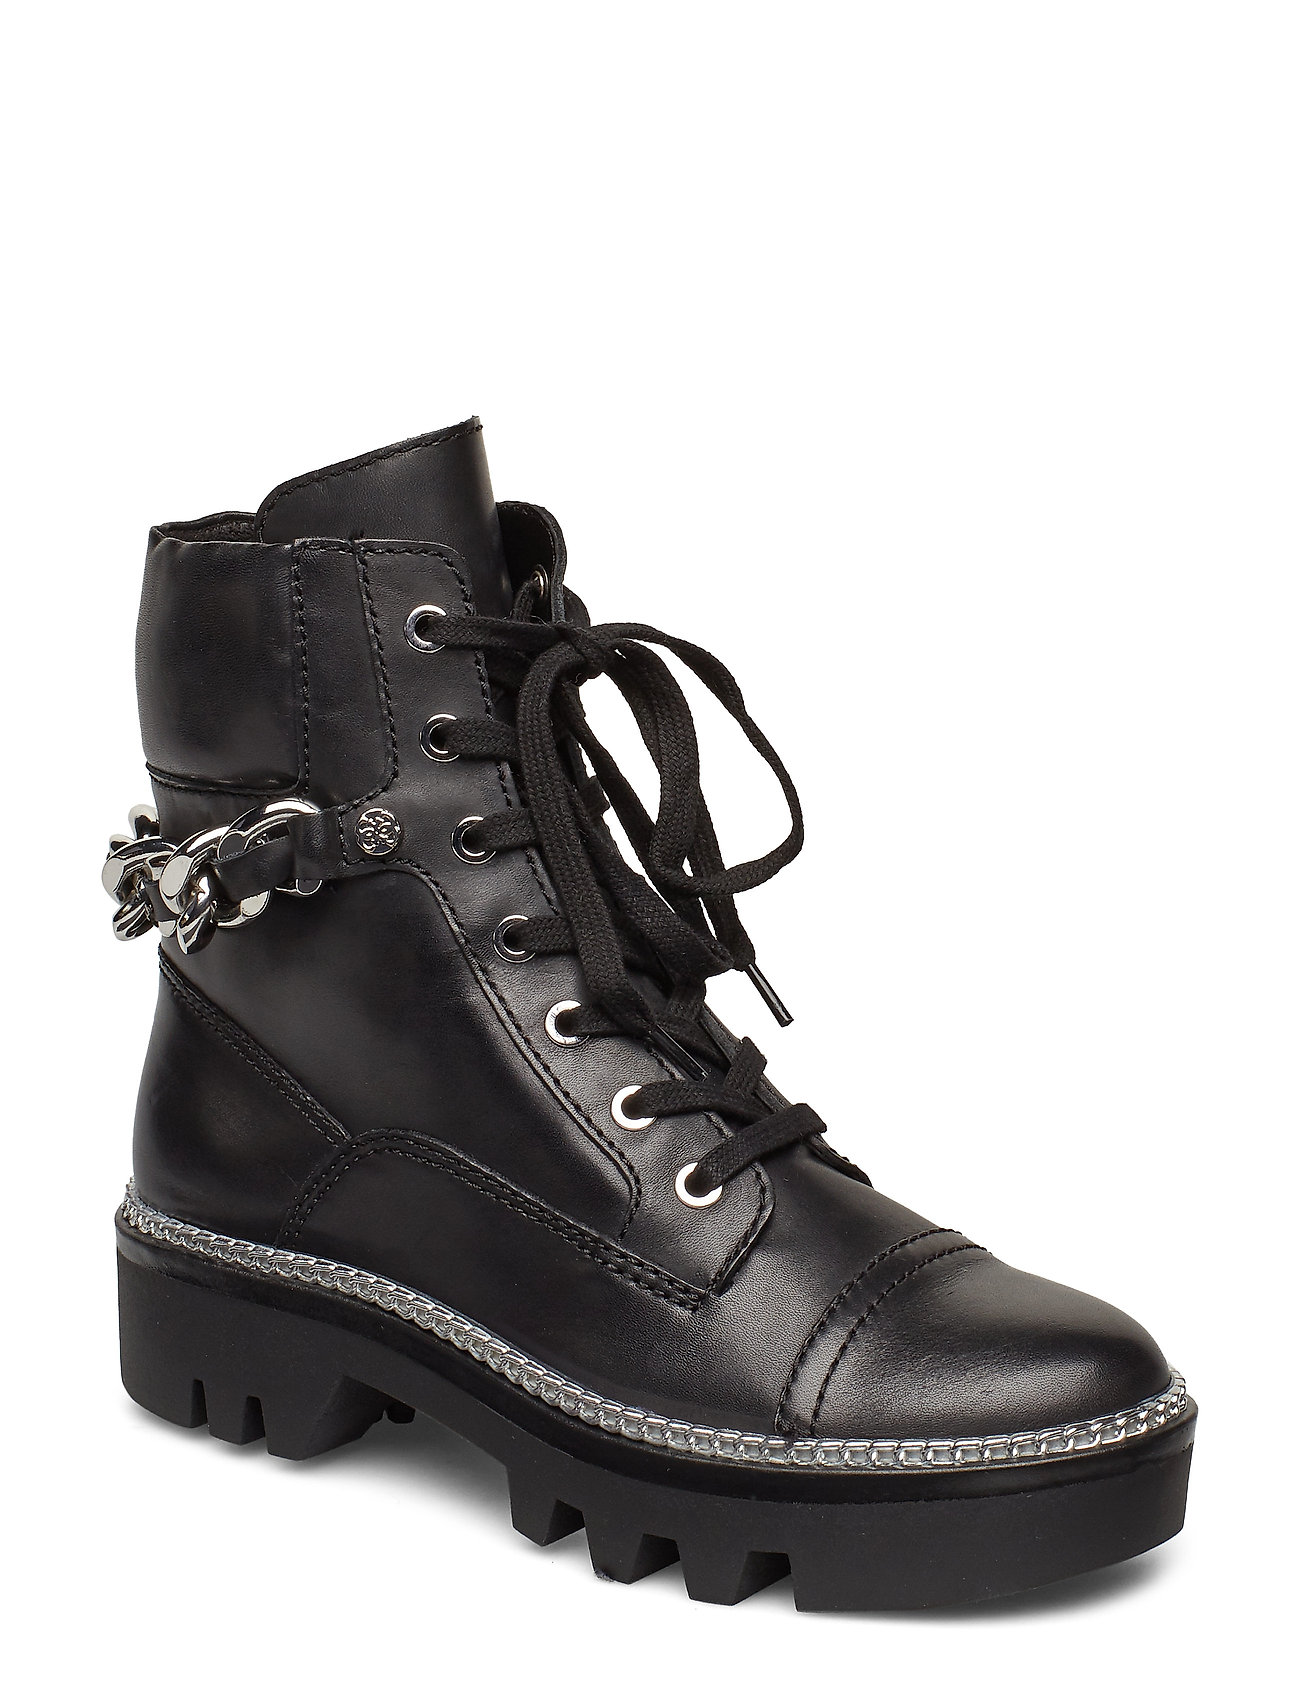 GUESS Domain/Stivaletto /Lea Shoes Boots Ankle Boots Ankle Boots Flat Heel Schwarz GUESS